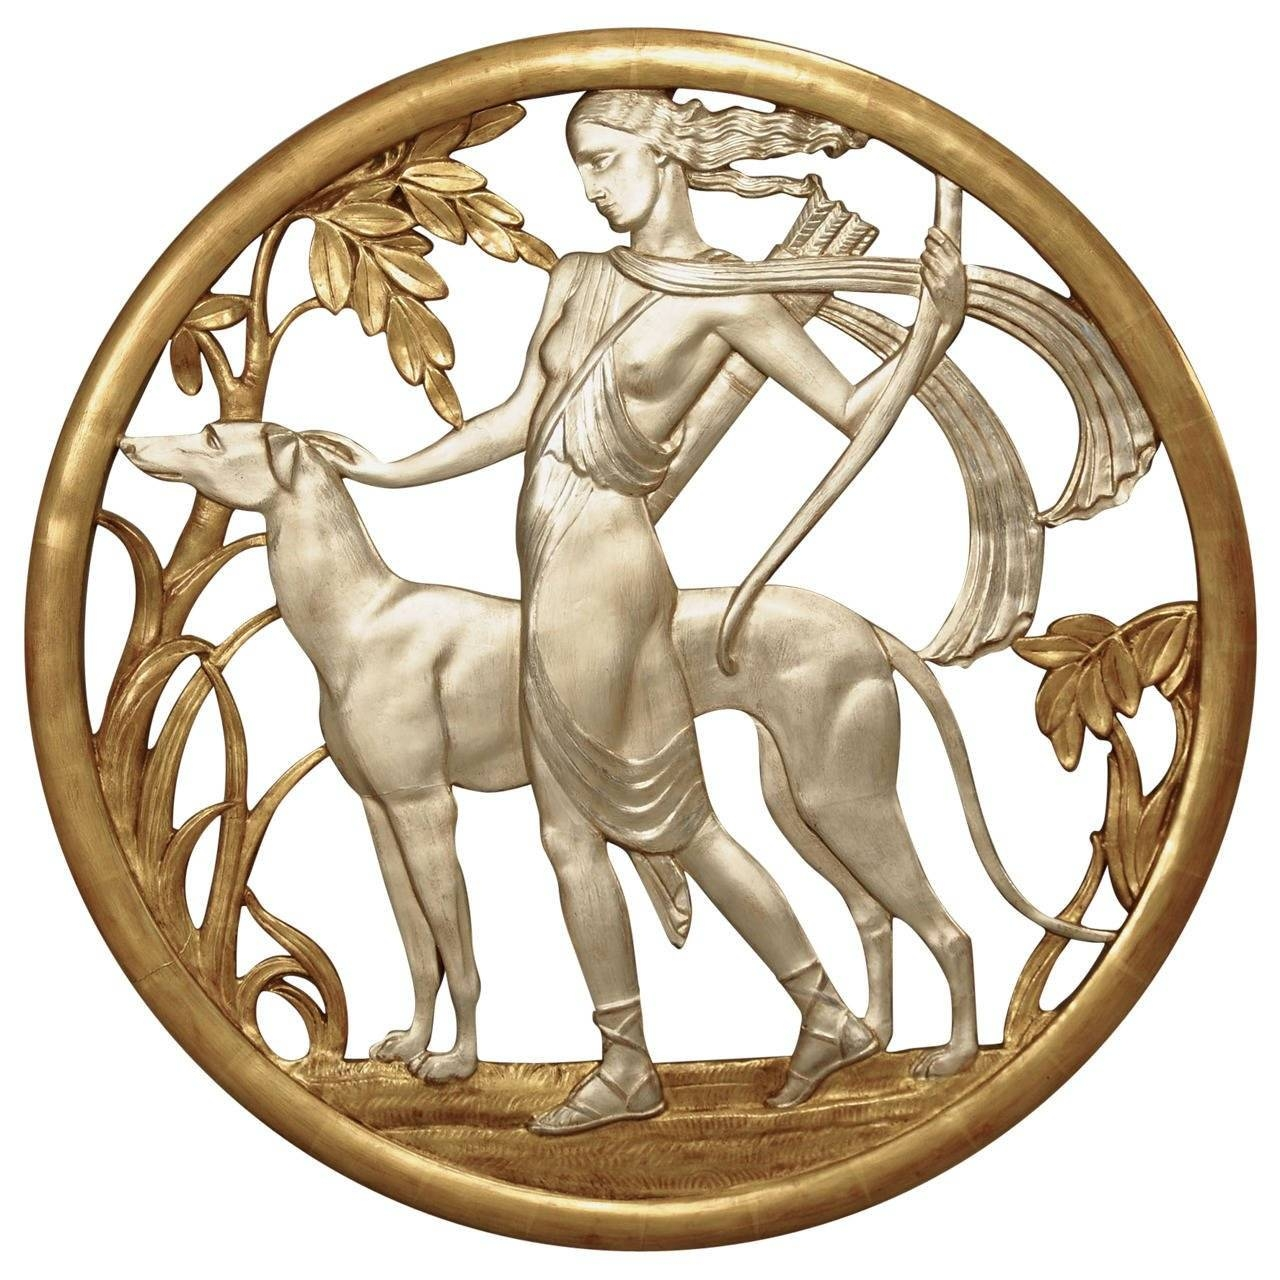 Important Art Deco Mythological Gilt Wall Plaque For Sale At 1Stdibs Intended For Latest Art Deco Metal Wall Art (View 11 of 20)